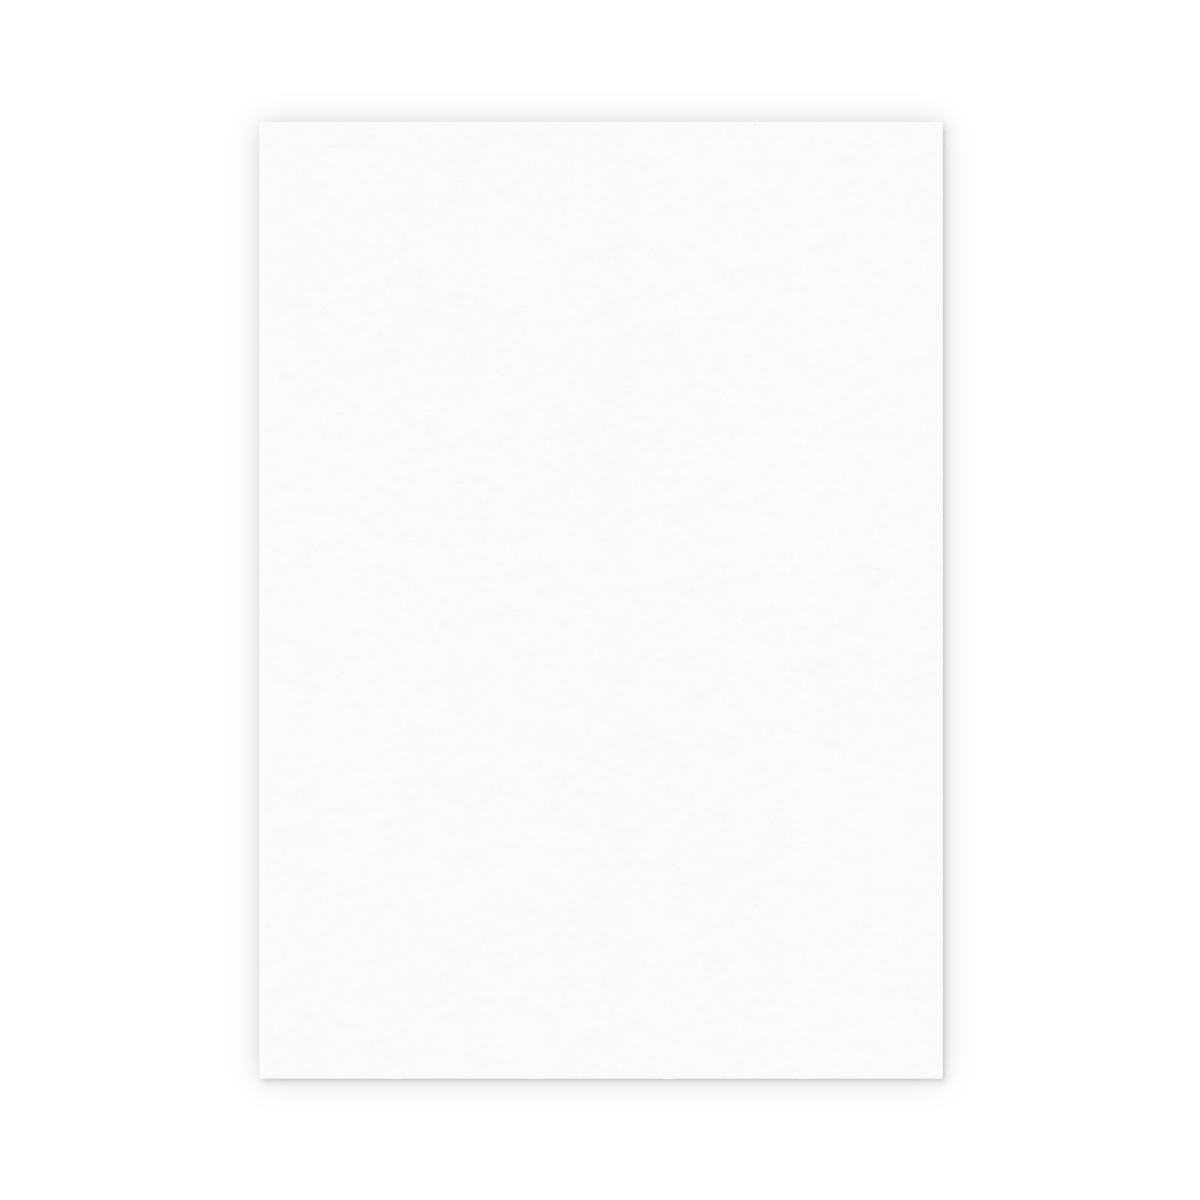 Https%3a%2f%2fwww.papier.com%2fproduct image%2f34650%2f4%2fshapes colours seven 8665 rueckseite 1519910227.png?ixlib=rb 1.1